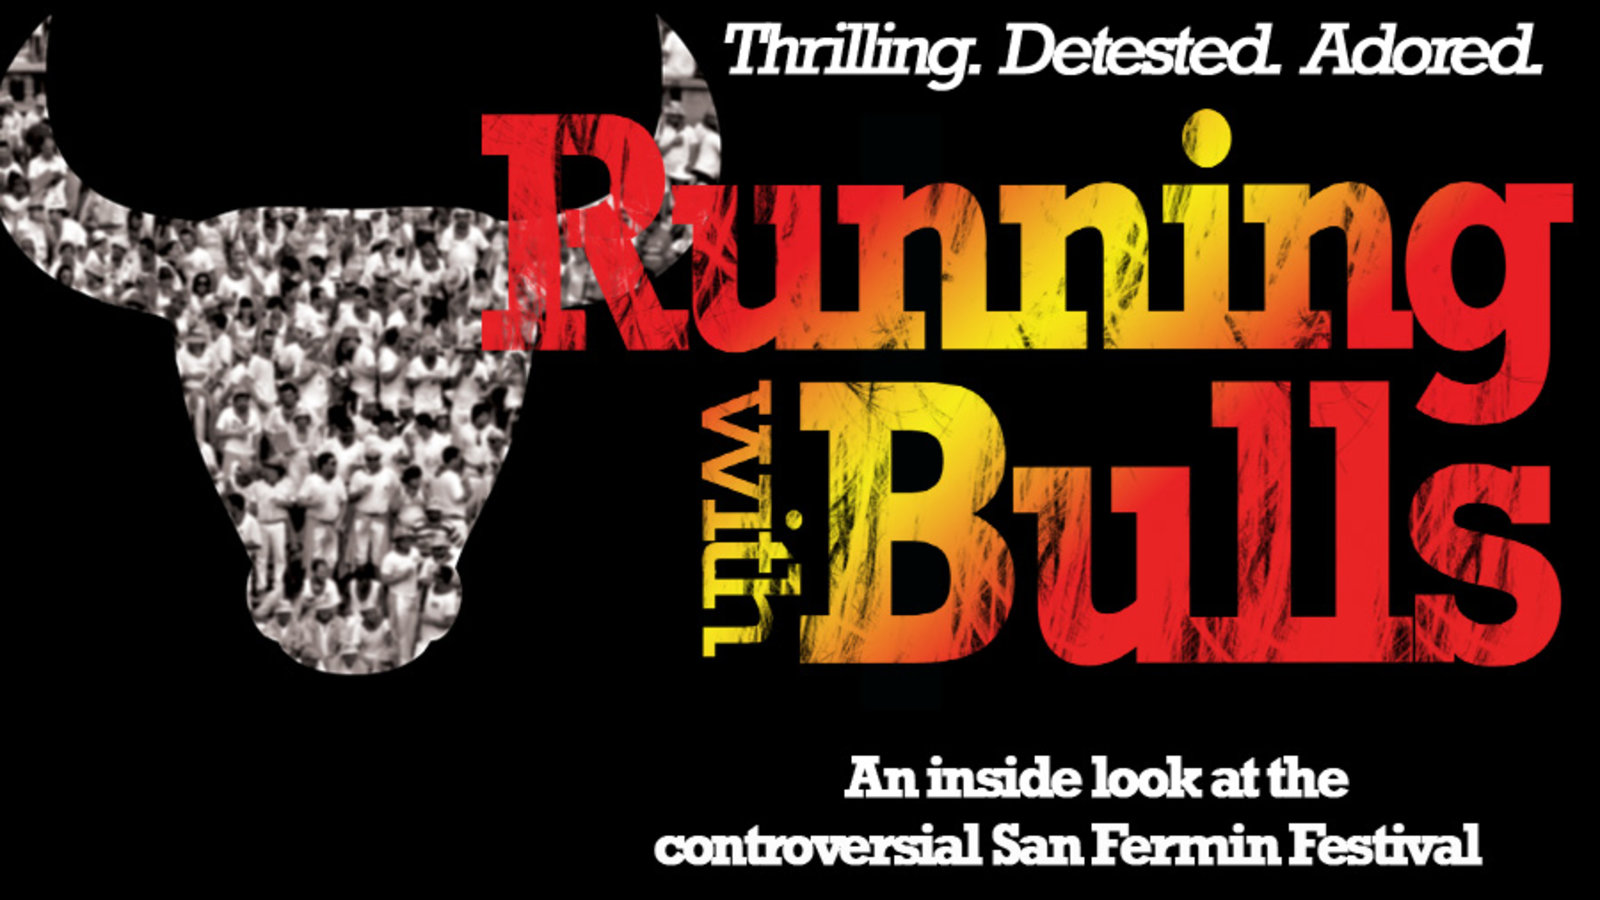 Running with Bulls - The Bull Run in Spain